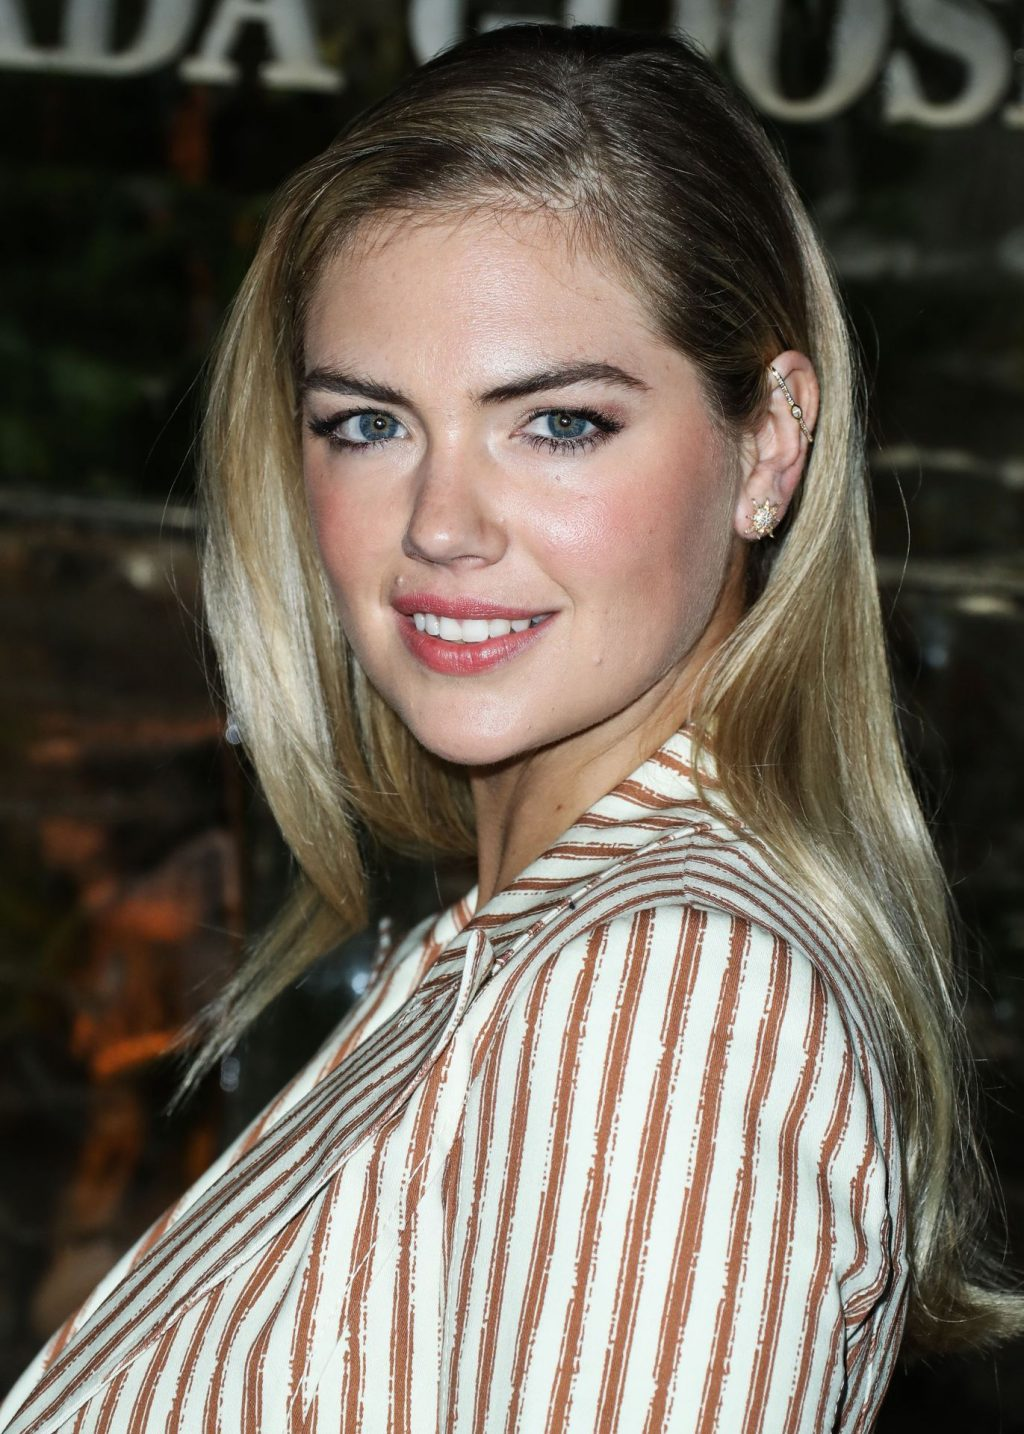 Kate Upton Sexy The Fappening Blog 29 1024x1434 - Kate Upton Attends Canada Goose And Vogue Cocktails & Conversations (104 Photos)